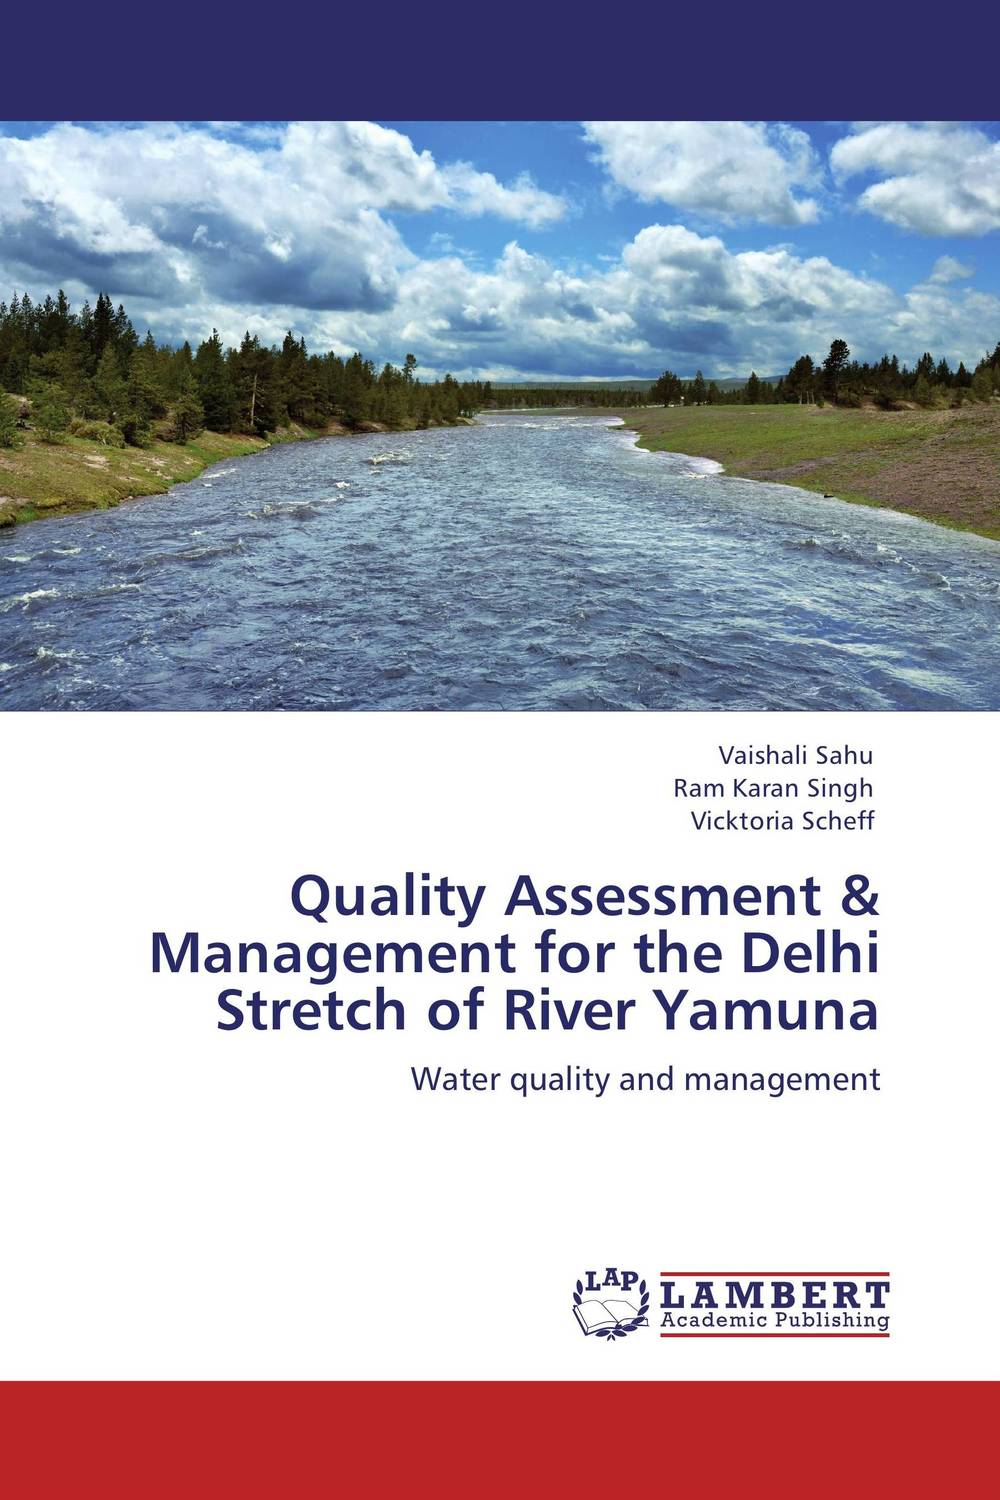 Quality Assessment & Management for the Delhi Stretch of River Yamuna effects of dams on river water quality